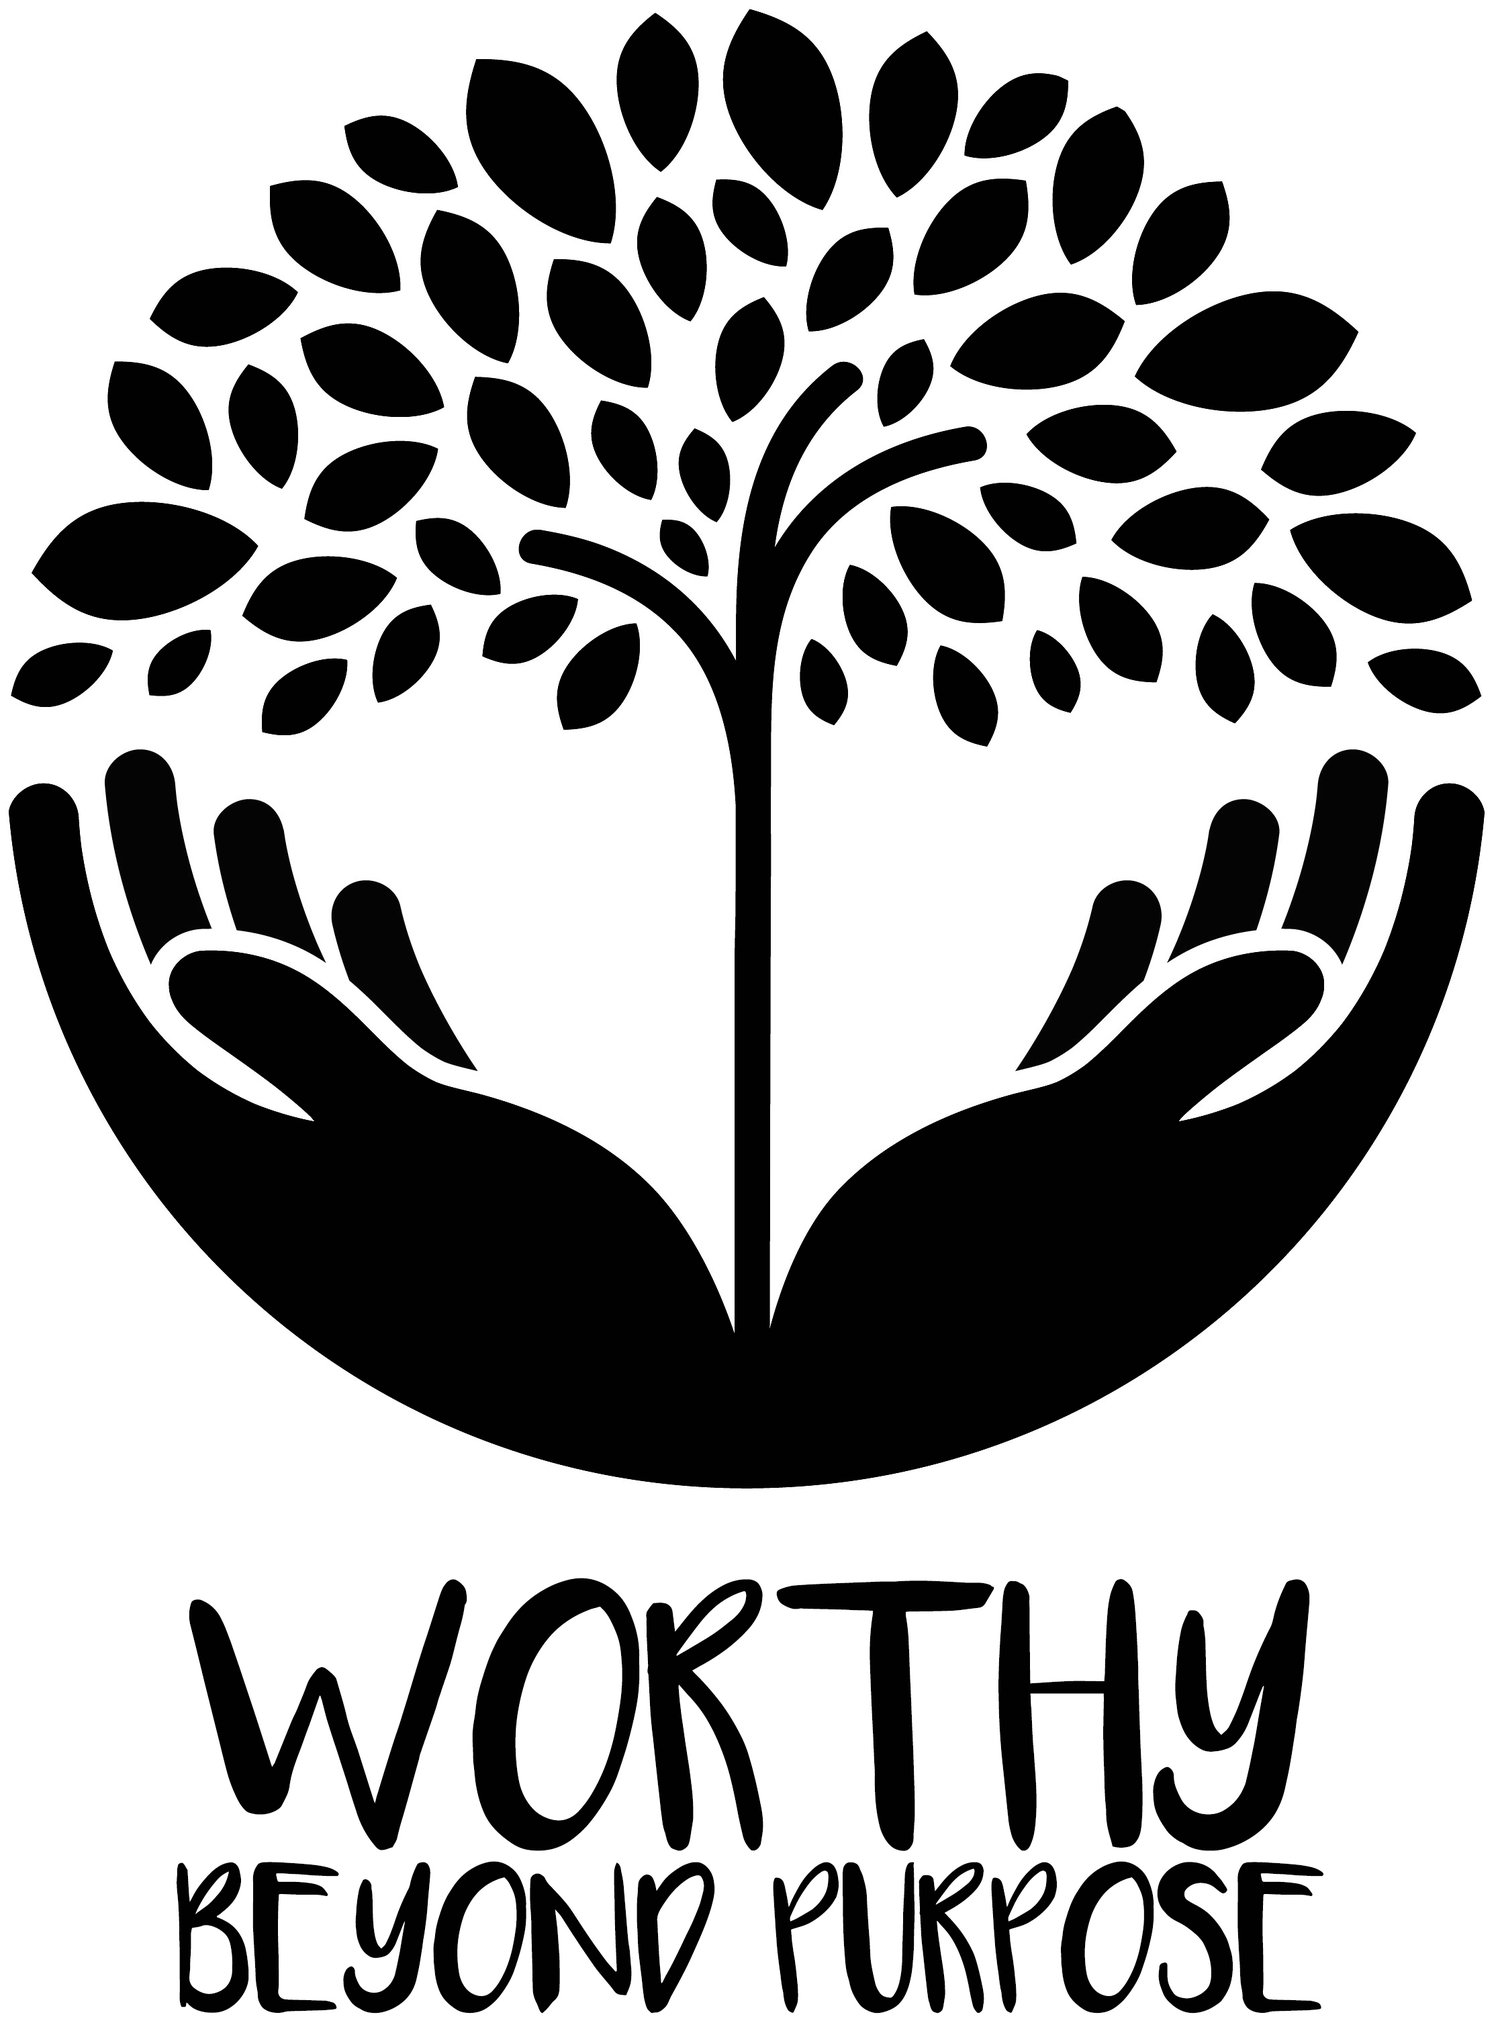 WORTHY BEYOND PURPOSE